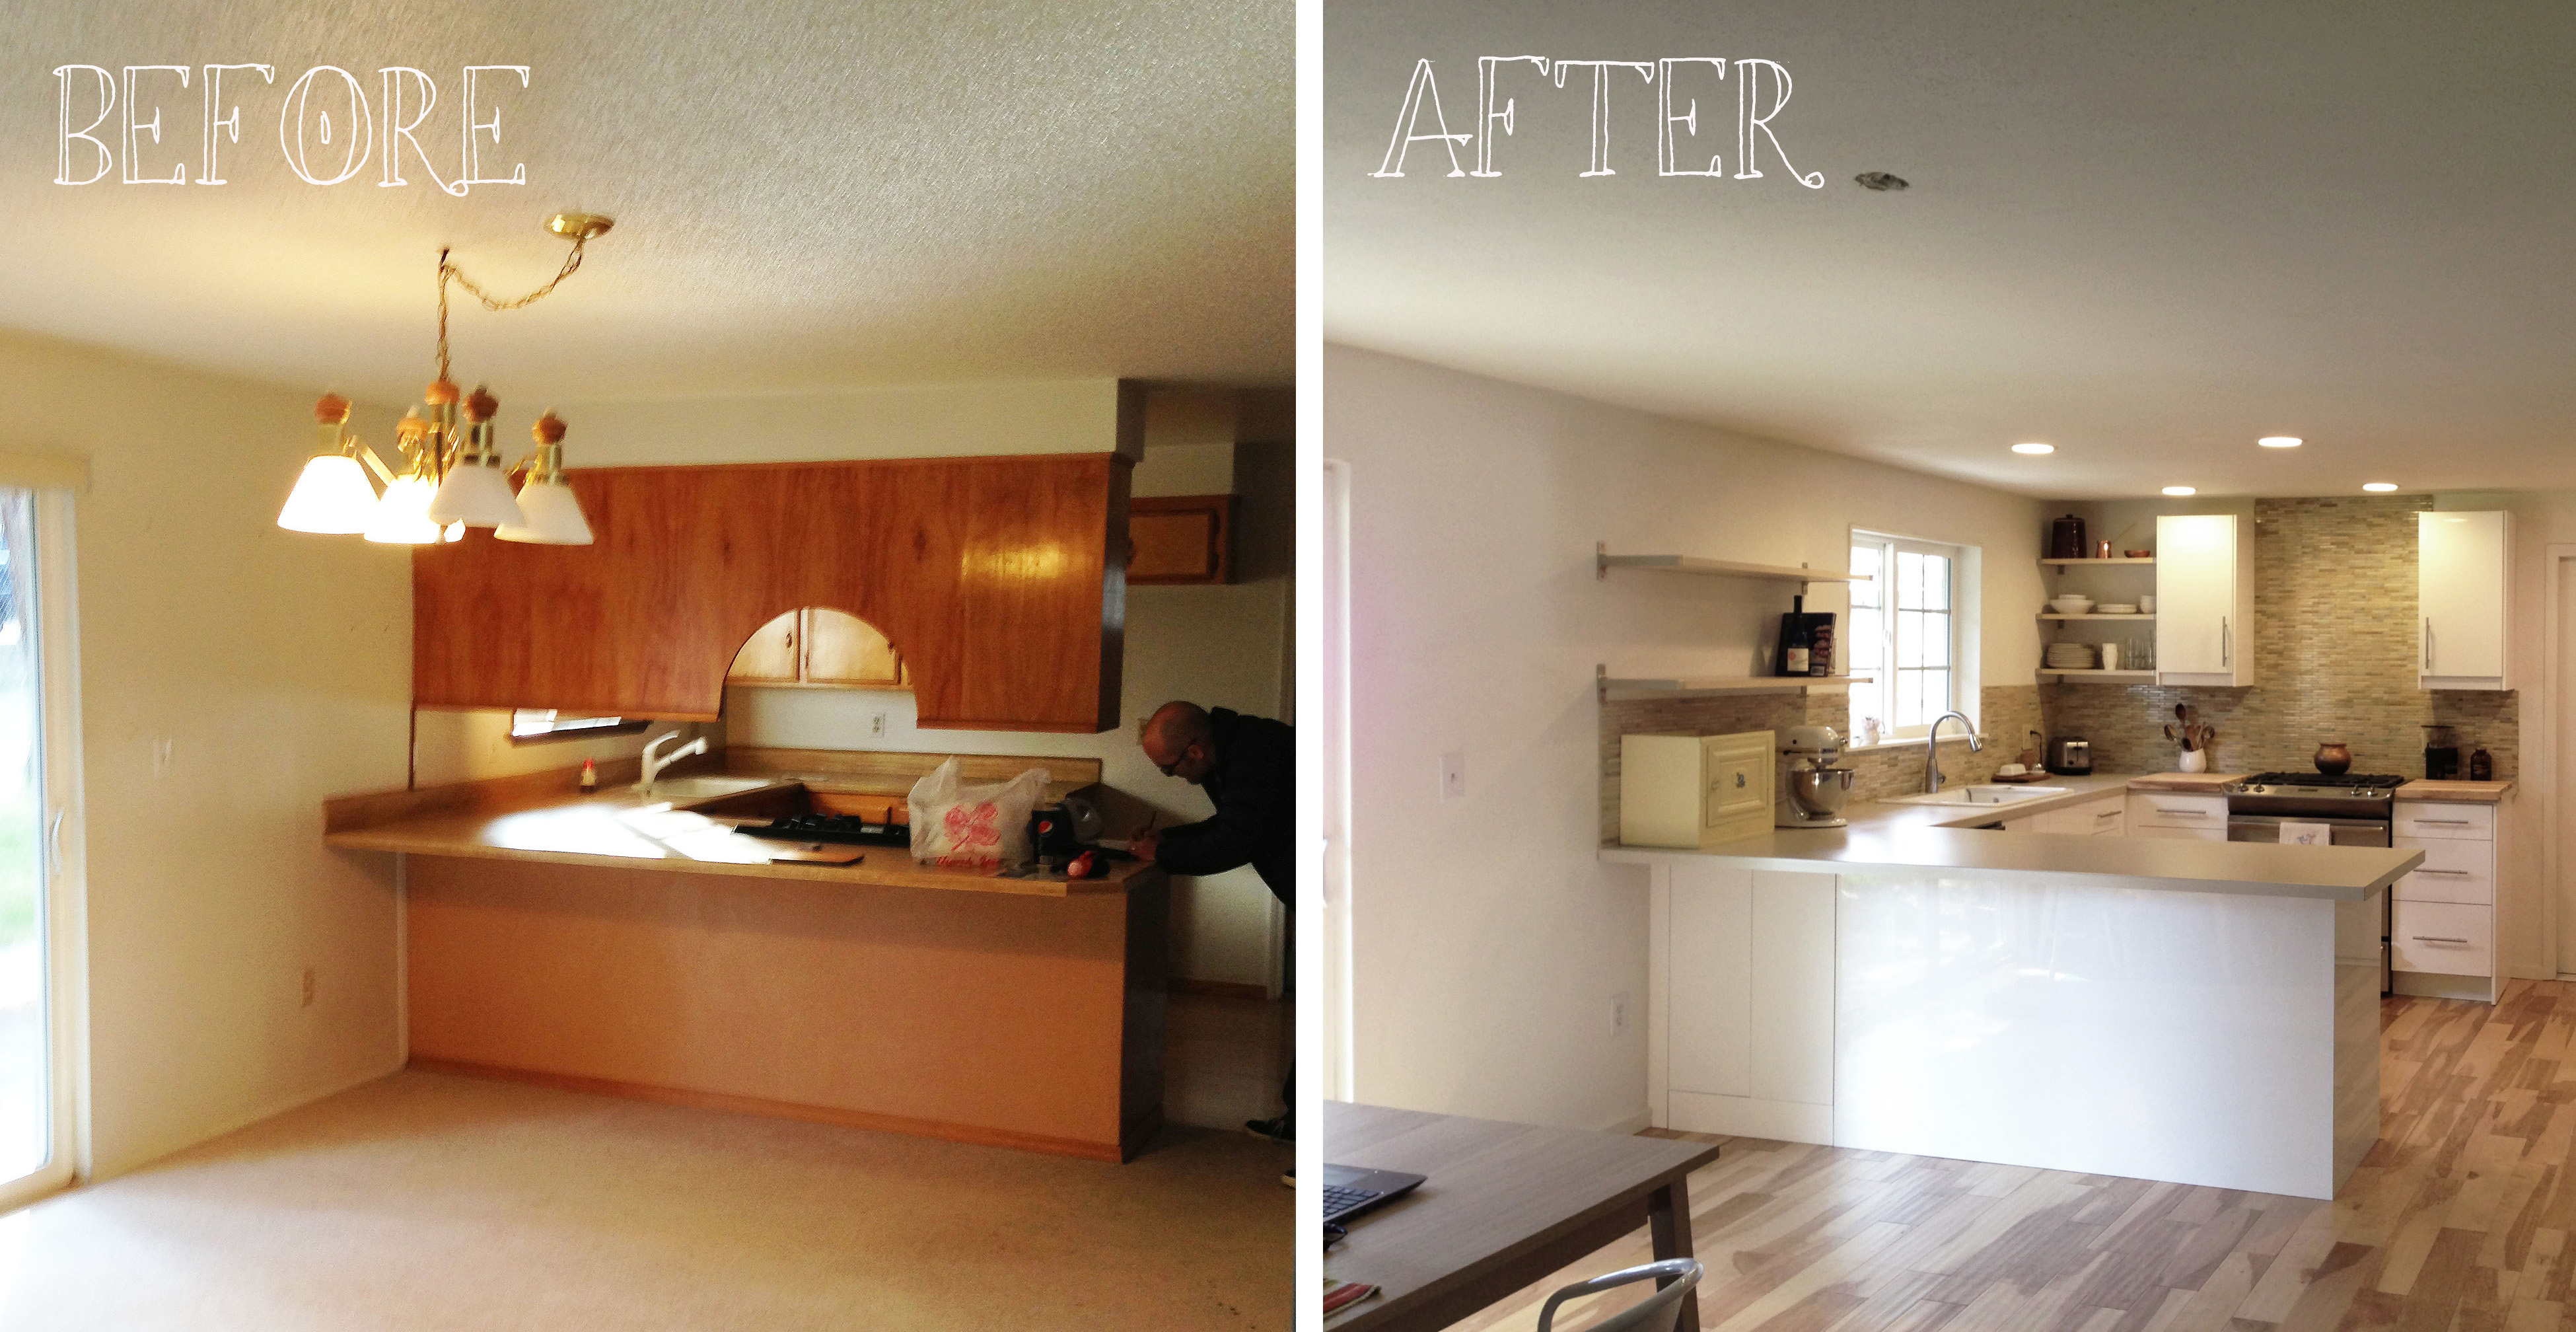 1000 images about renovations on pinterest before after for Minimalist house renovation